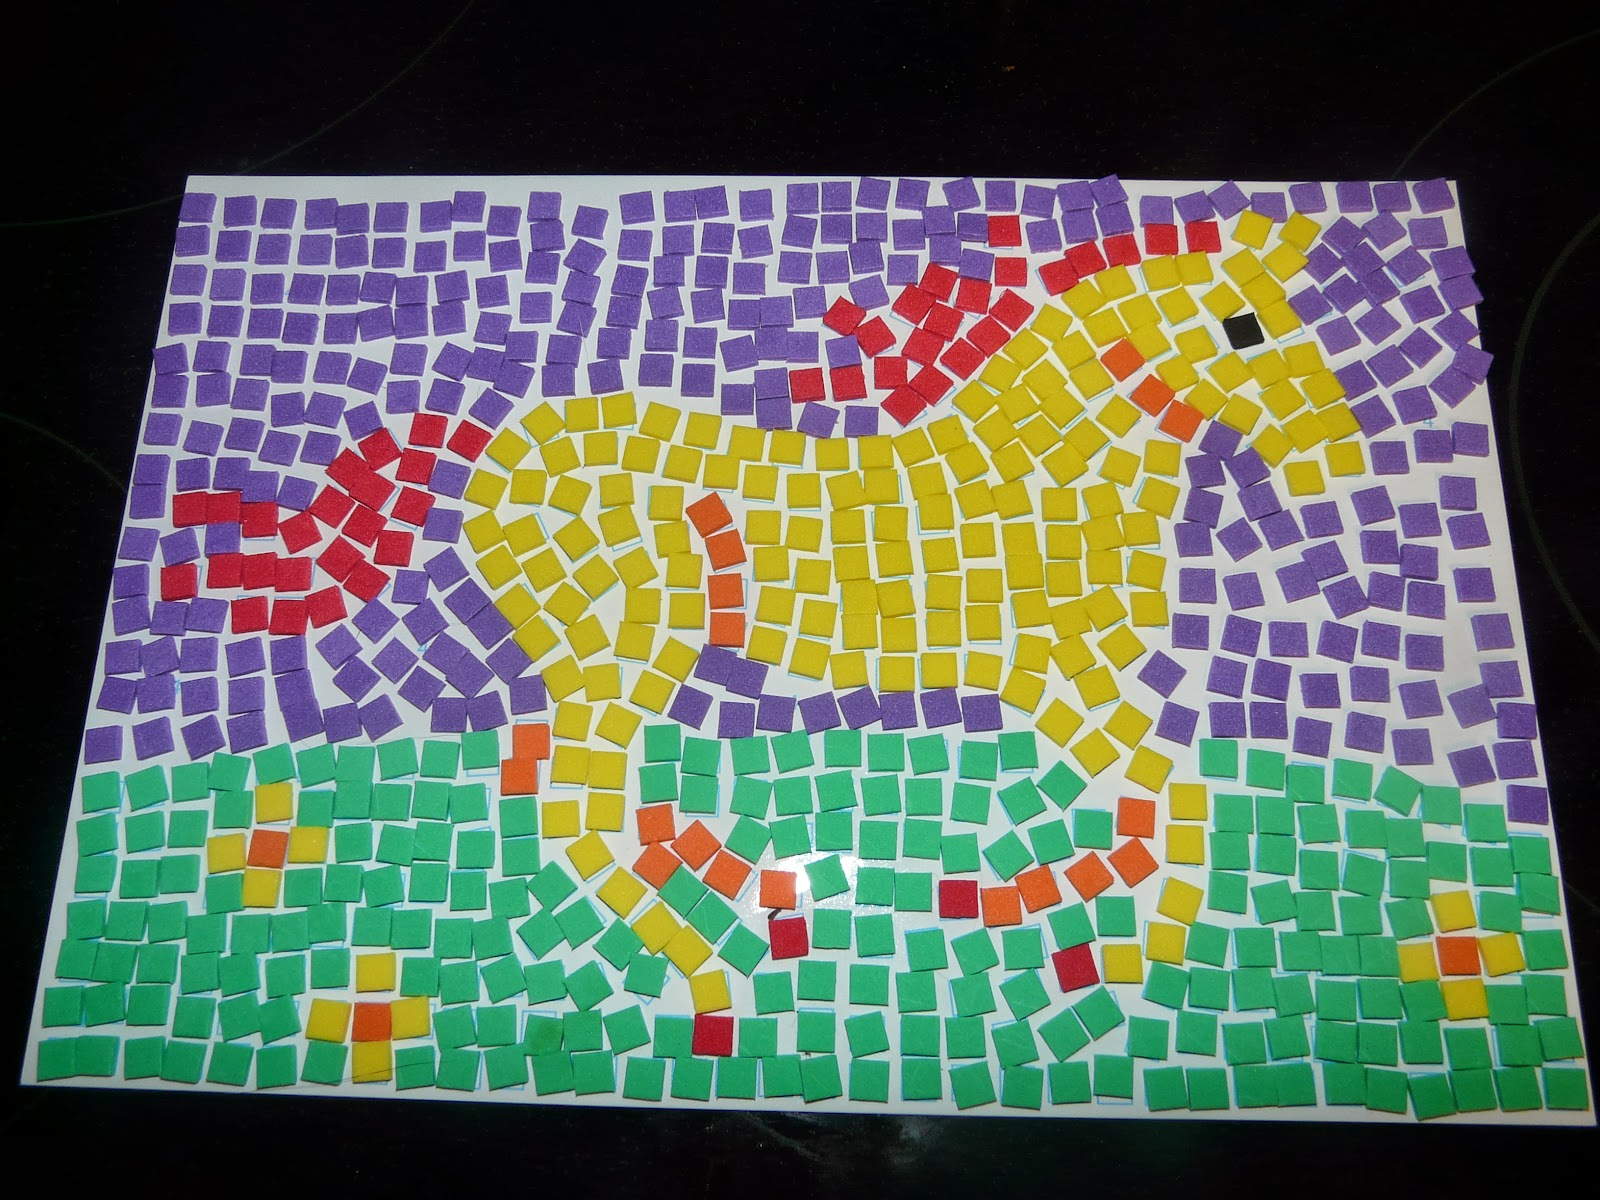 roman mosaic templates for kids - the gallery for simple mosaic patterns for kids